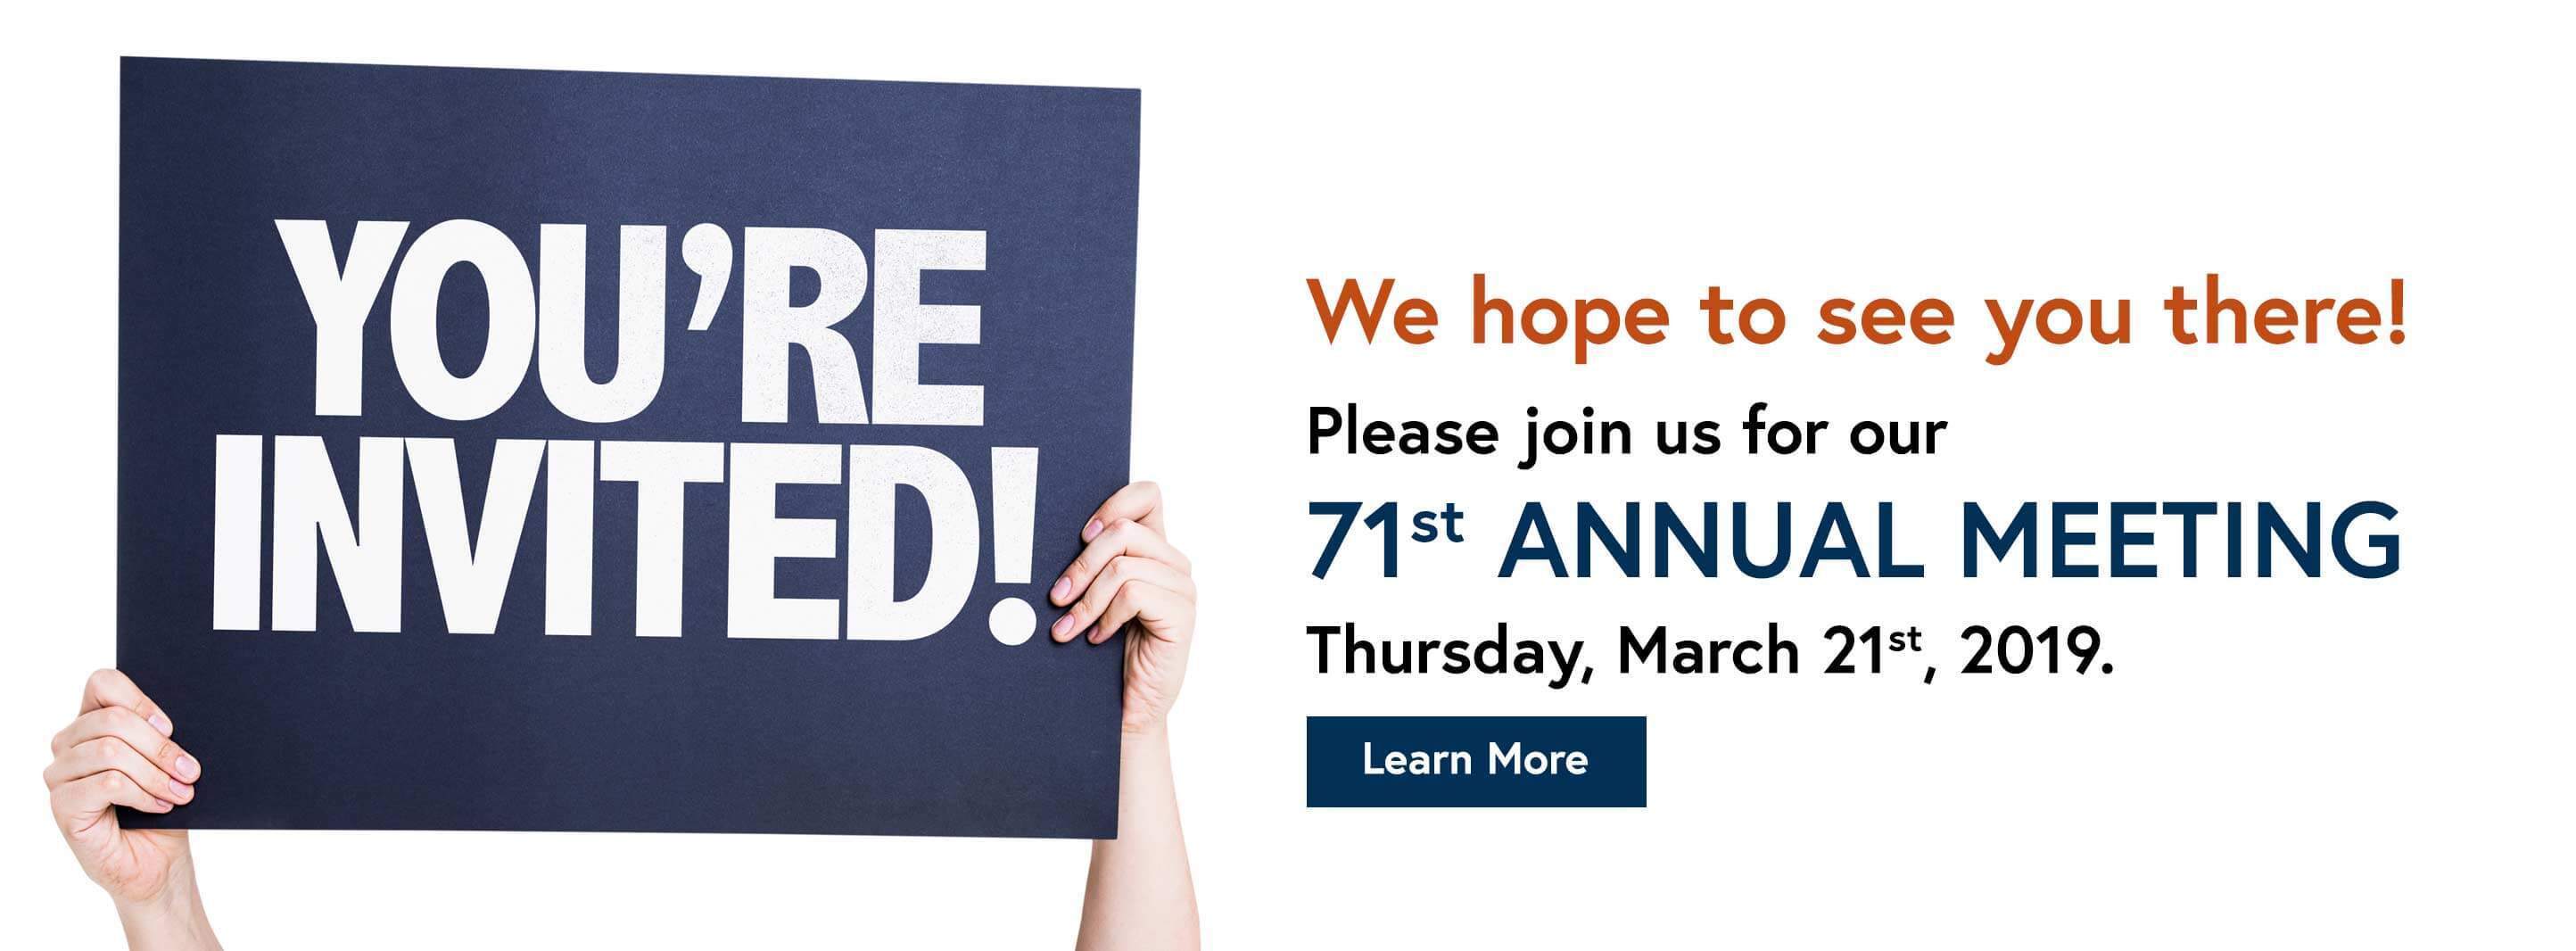 You're invited! We hope to see you there! Please join us for our 71st annual meeting Thursday, March 21, 2019.